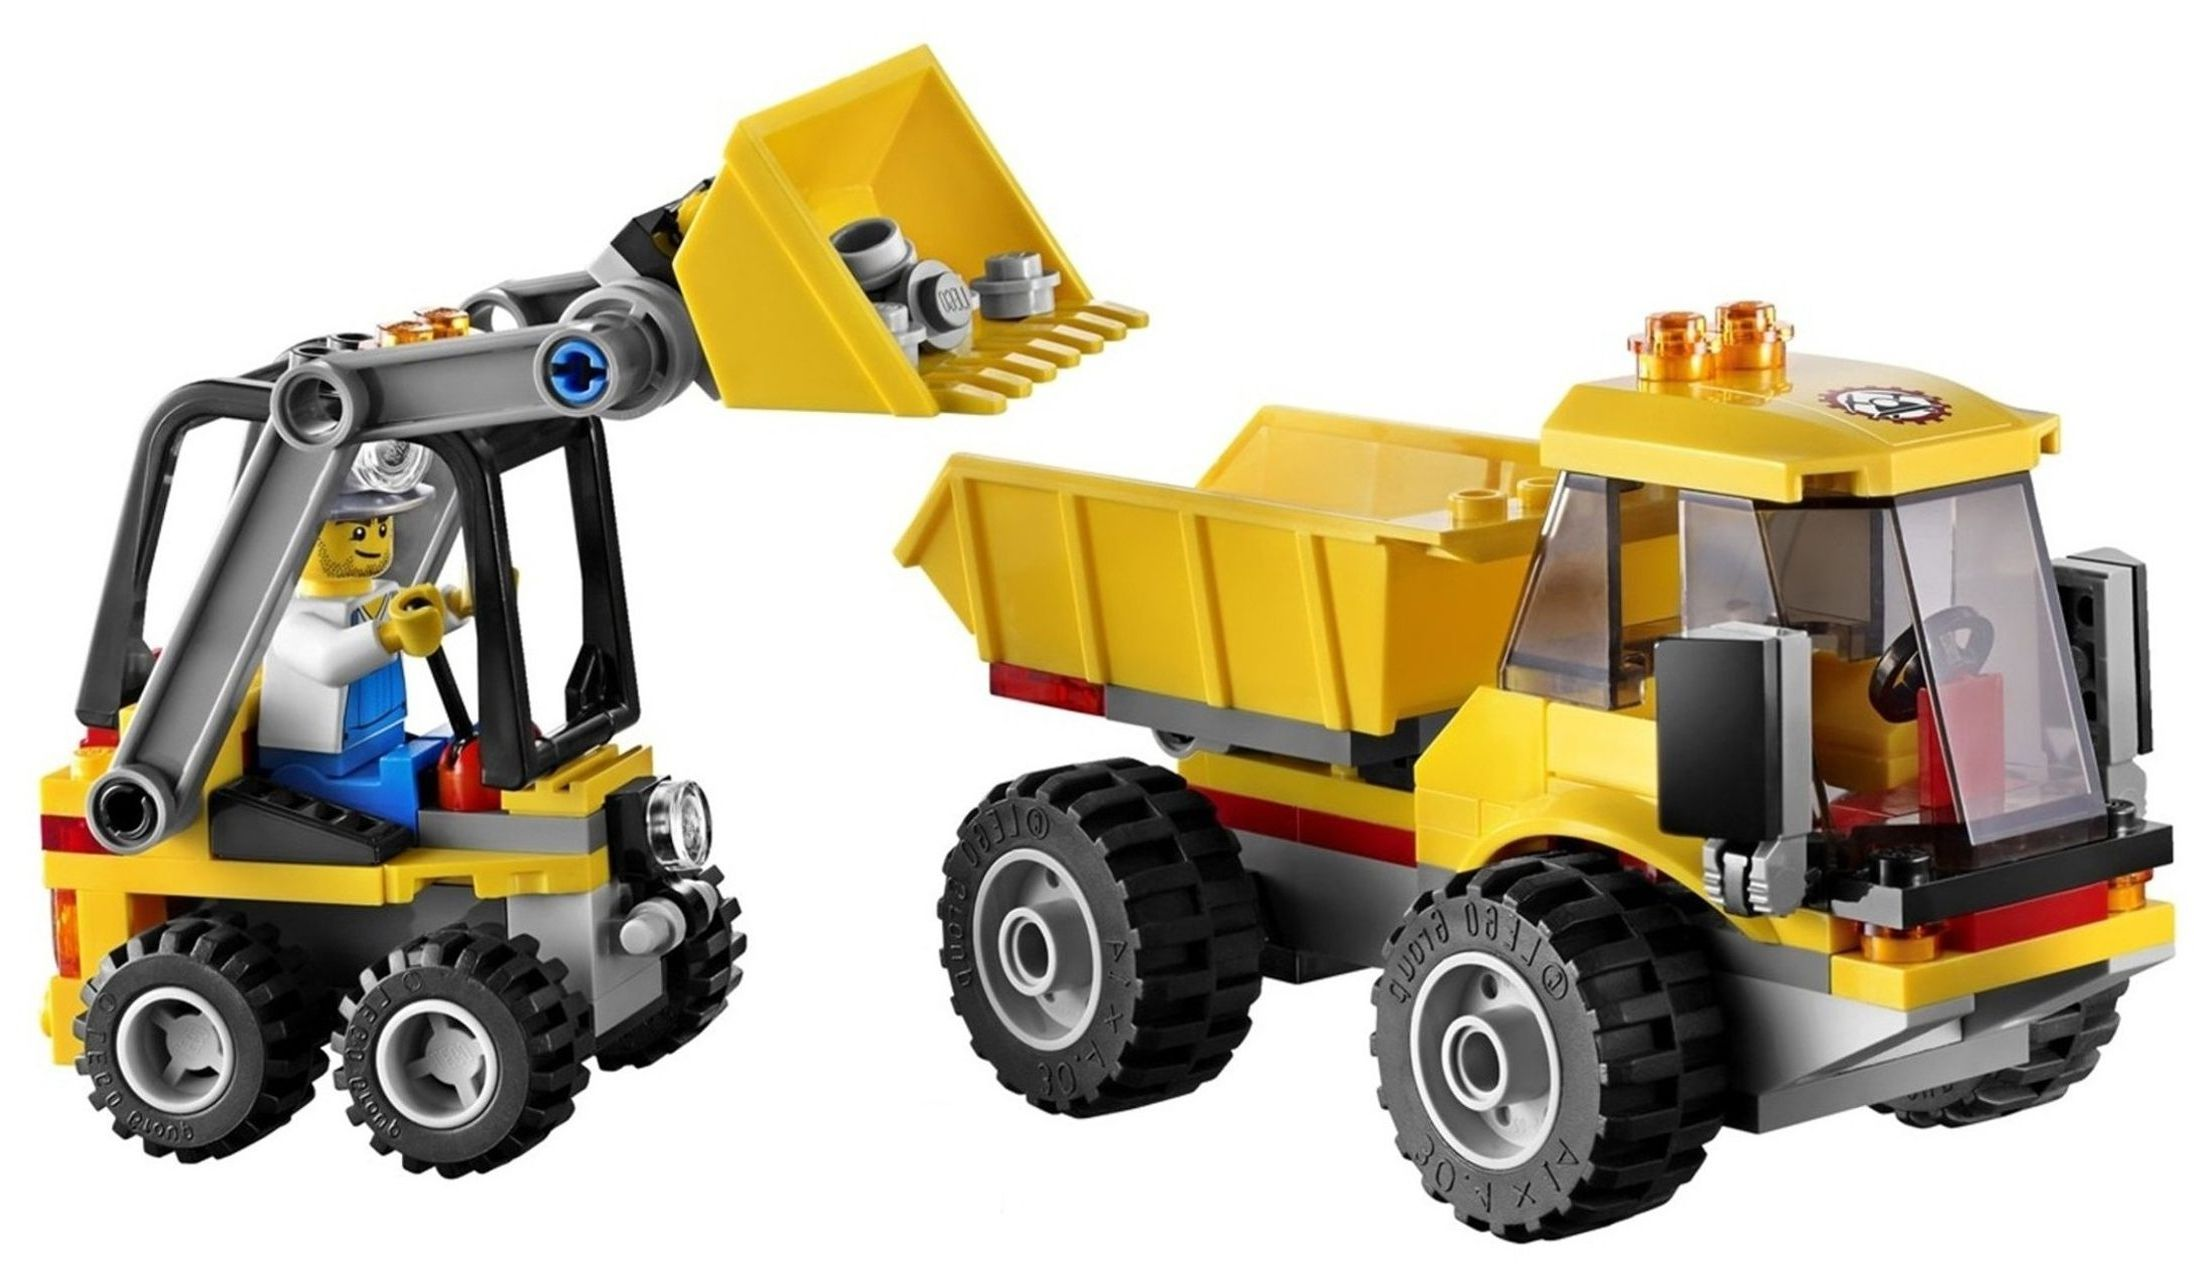 Lego city 5001134 mining collection pack i brick city - Construcciones de lego para ninos ...